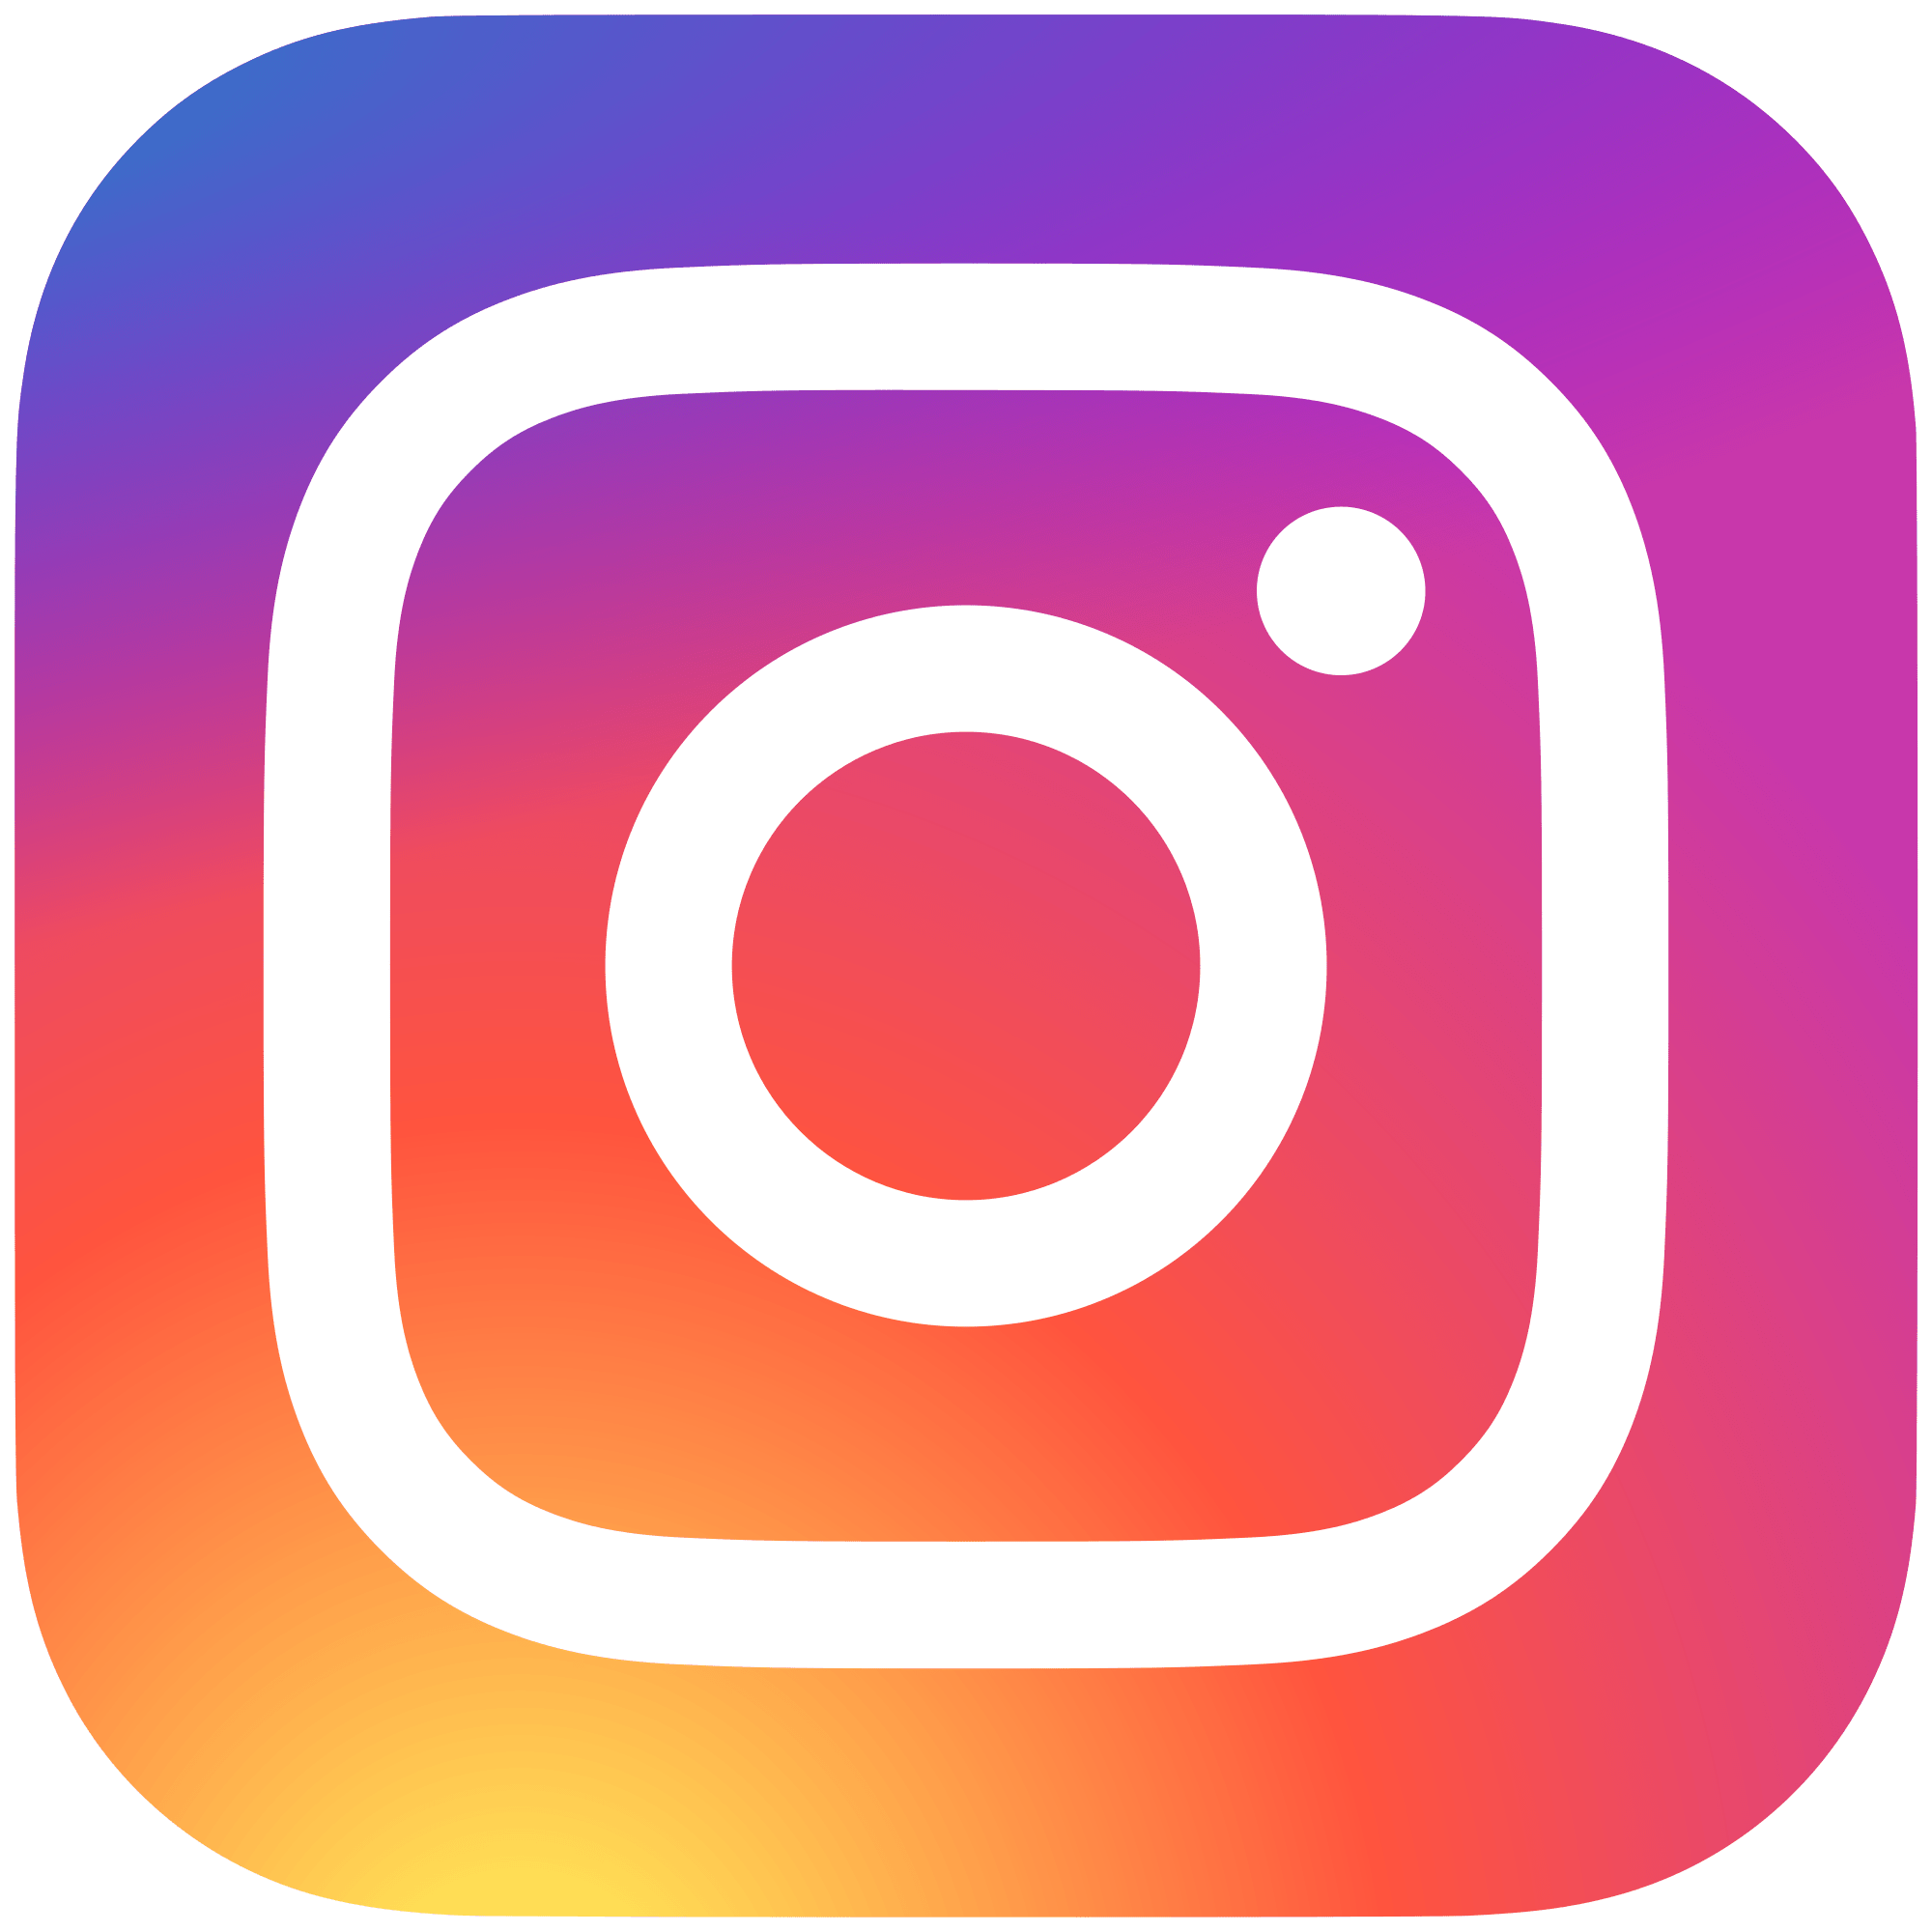 How to download pics and video from Instagram using a browser with no add-ons or extra apps